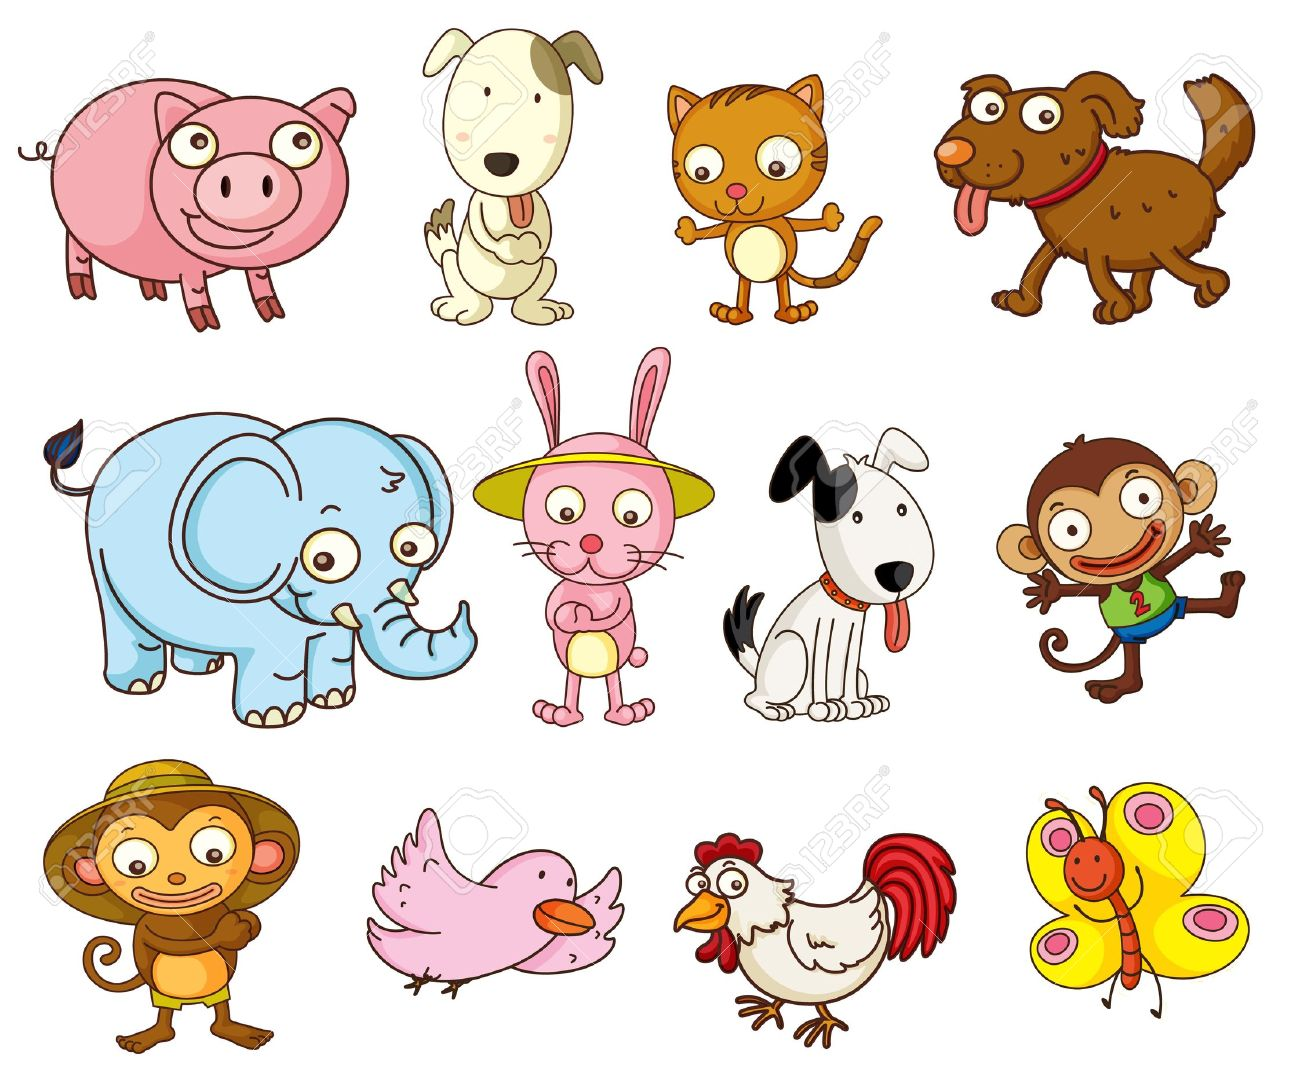 Animal clipart #10, Download drawings